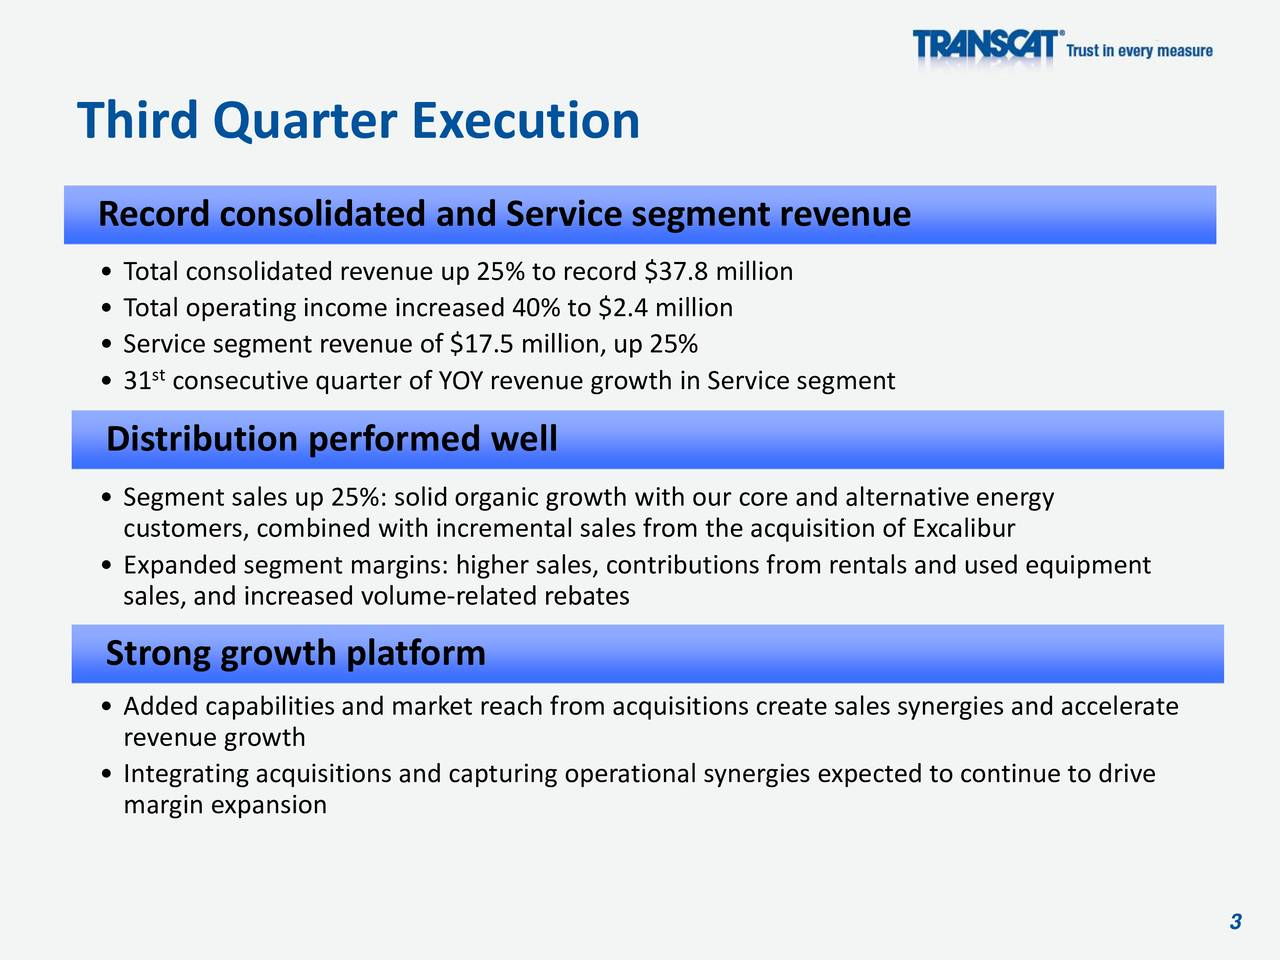 Record consolidated and Service segment revenue Total consolidated revenue up 25% to record $37.8 million Total operating income increased 40% to $2.4 million Service segment revenue of $17.5 million, up 25% 31 consecutive quarter of YOY revenue growth in Service segment Distribution performed well Segment sales up 25%: solid organic growth with our core and alternative energy customers, combined with incremental sales from the acquisition of Excalibur Expanded segment margins: higher sales, contributions from rentals and used equipment sales, and increased volume-related rebates Strong growth platform Added capabilities and market reach from acquisitions create sales synergies and accelerate revenue growth Integrating acquisitions and capturing operational synergies expected to continue to drive margin expansion 3